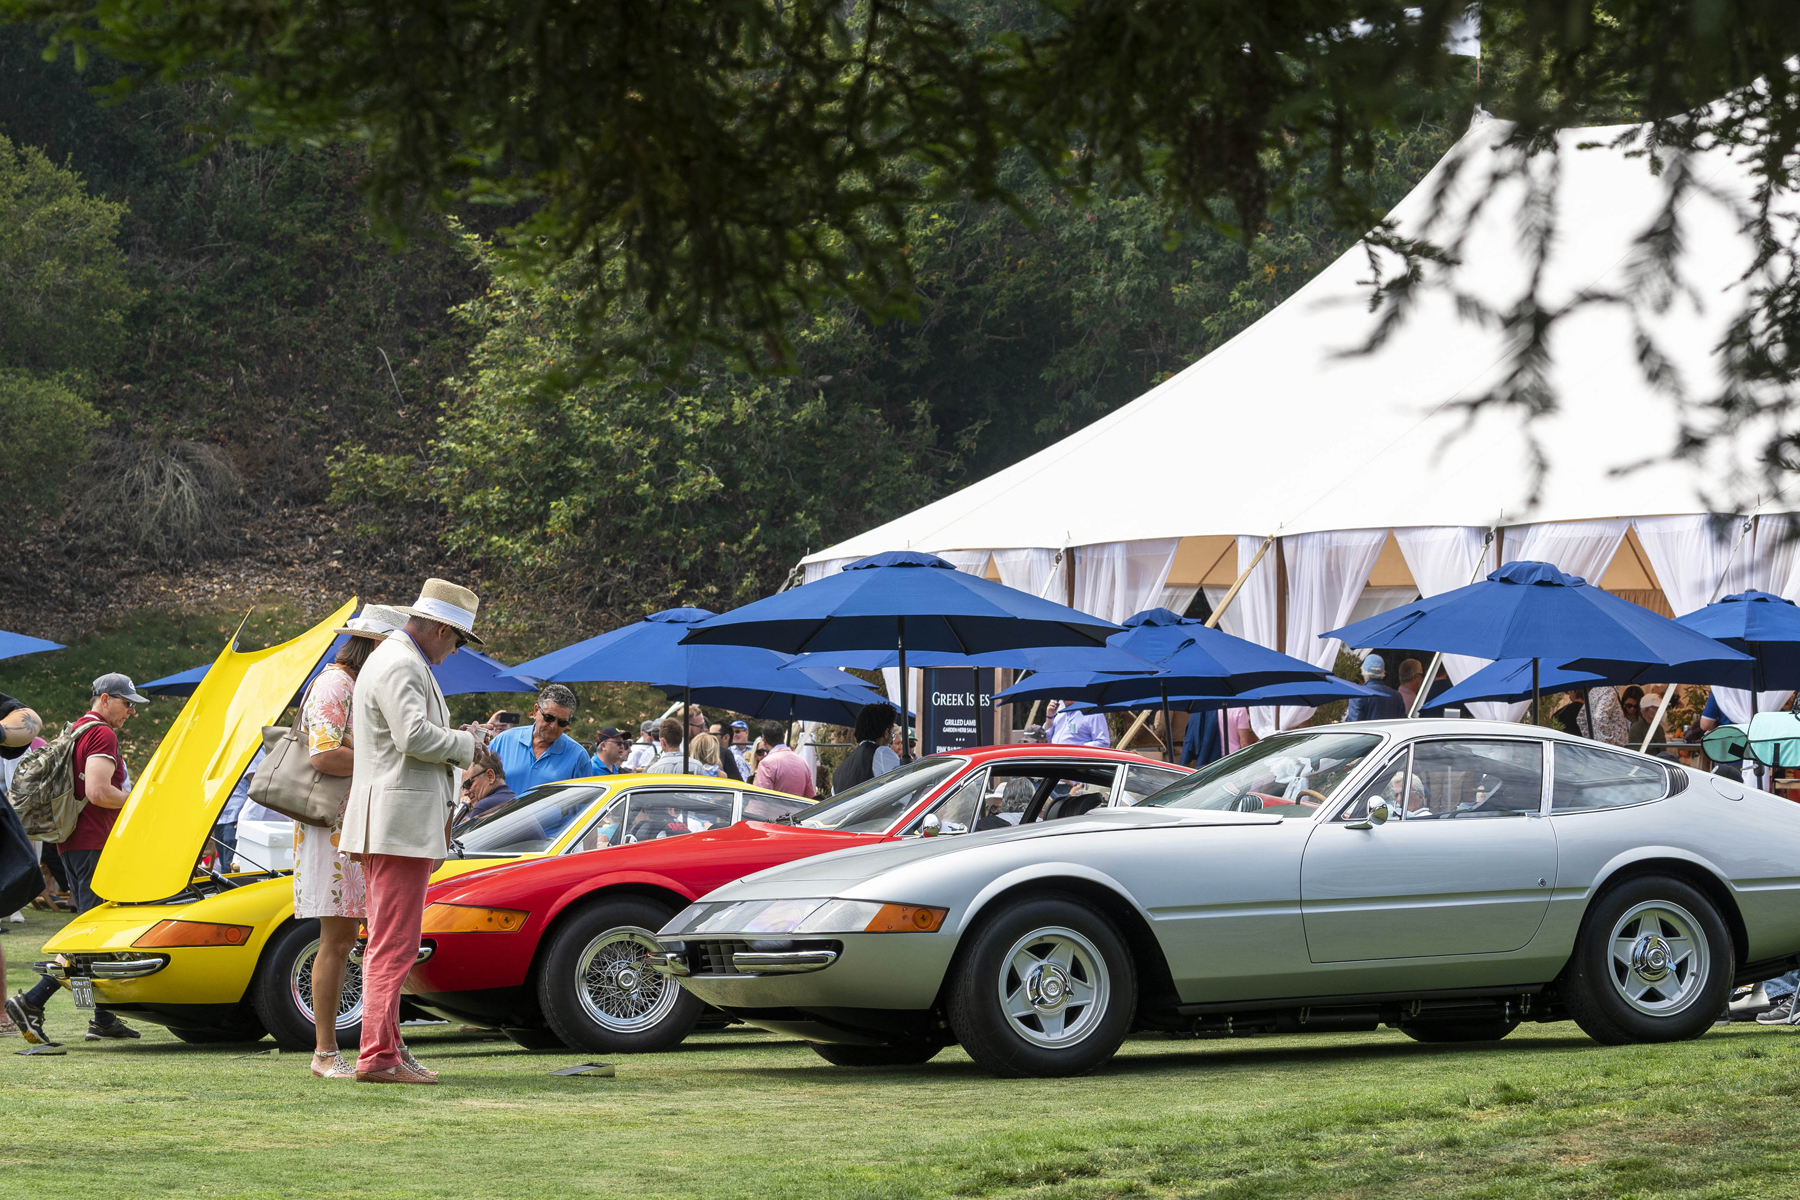 A group of cars at the Quail event with food pavilions in the background